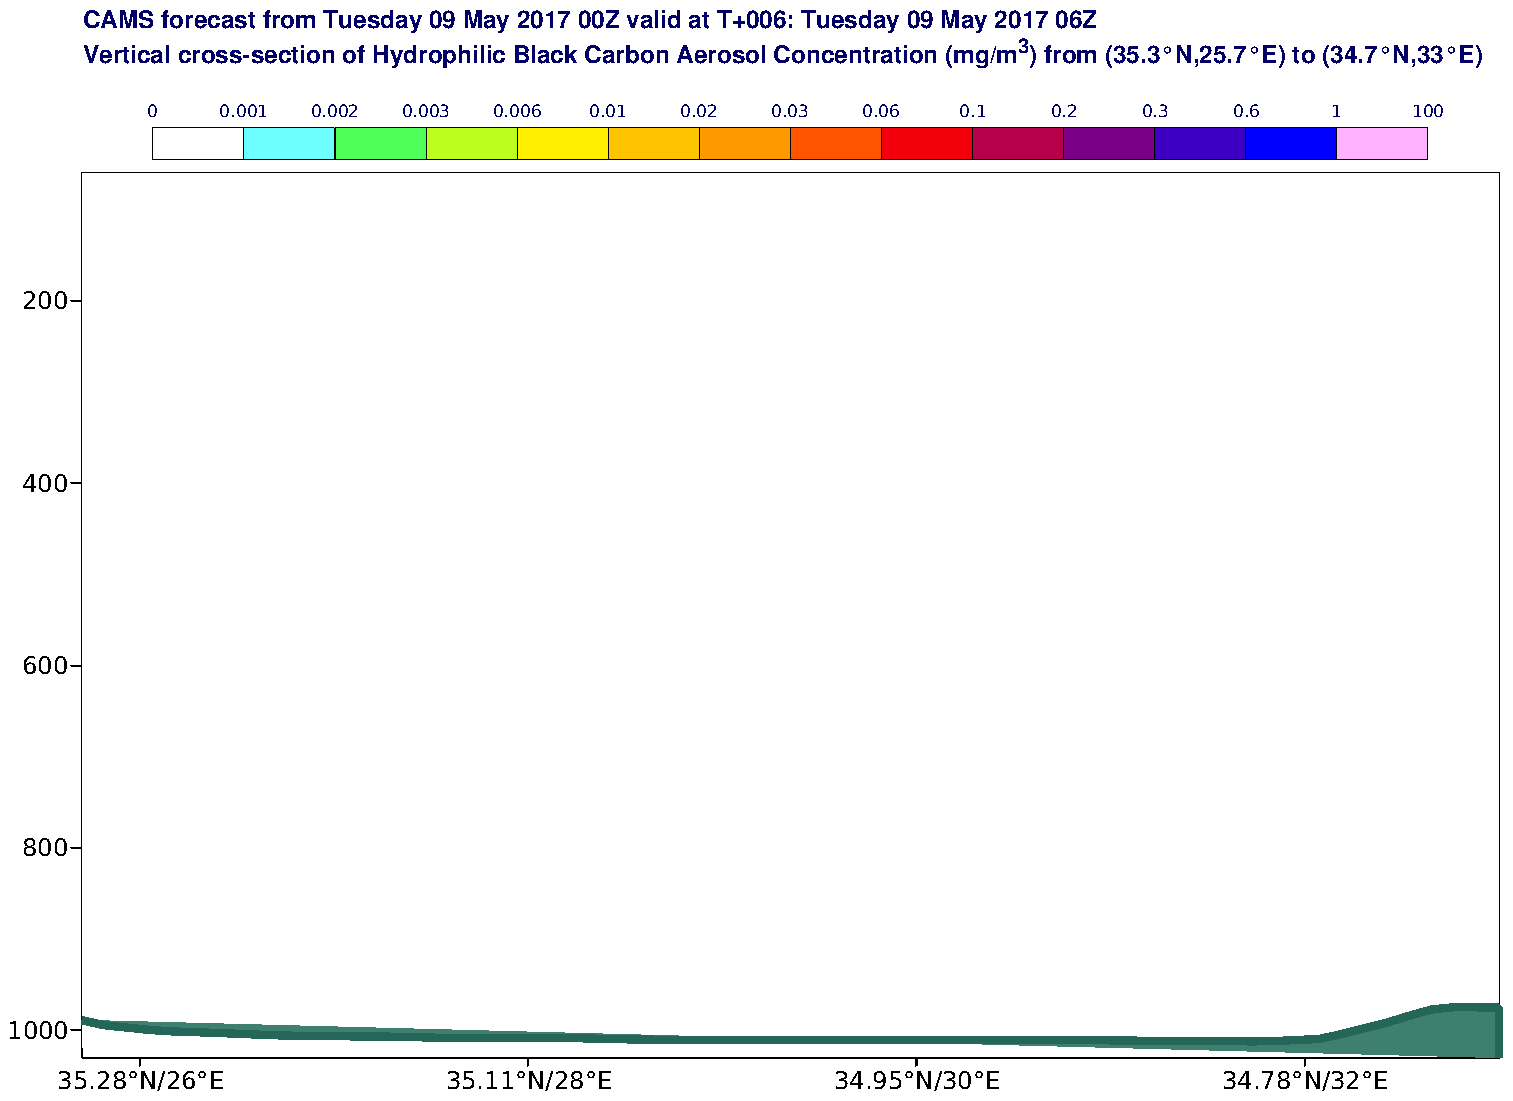 Vertical cross-section of Hydrophilic Black Carbon Aerosol Concentration (mg/m3) valid at T6 - 2017-05-09 06:00